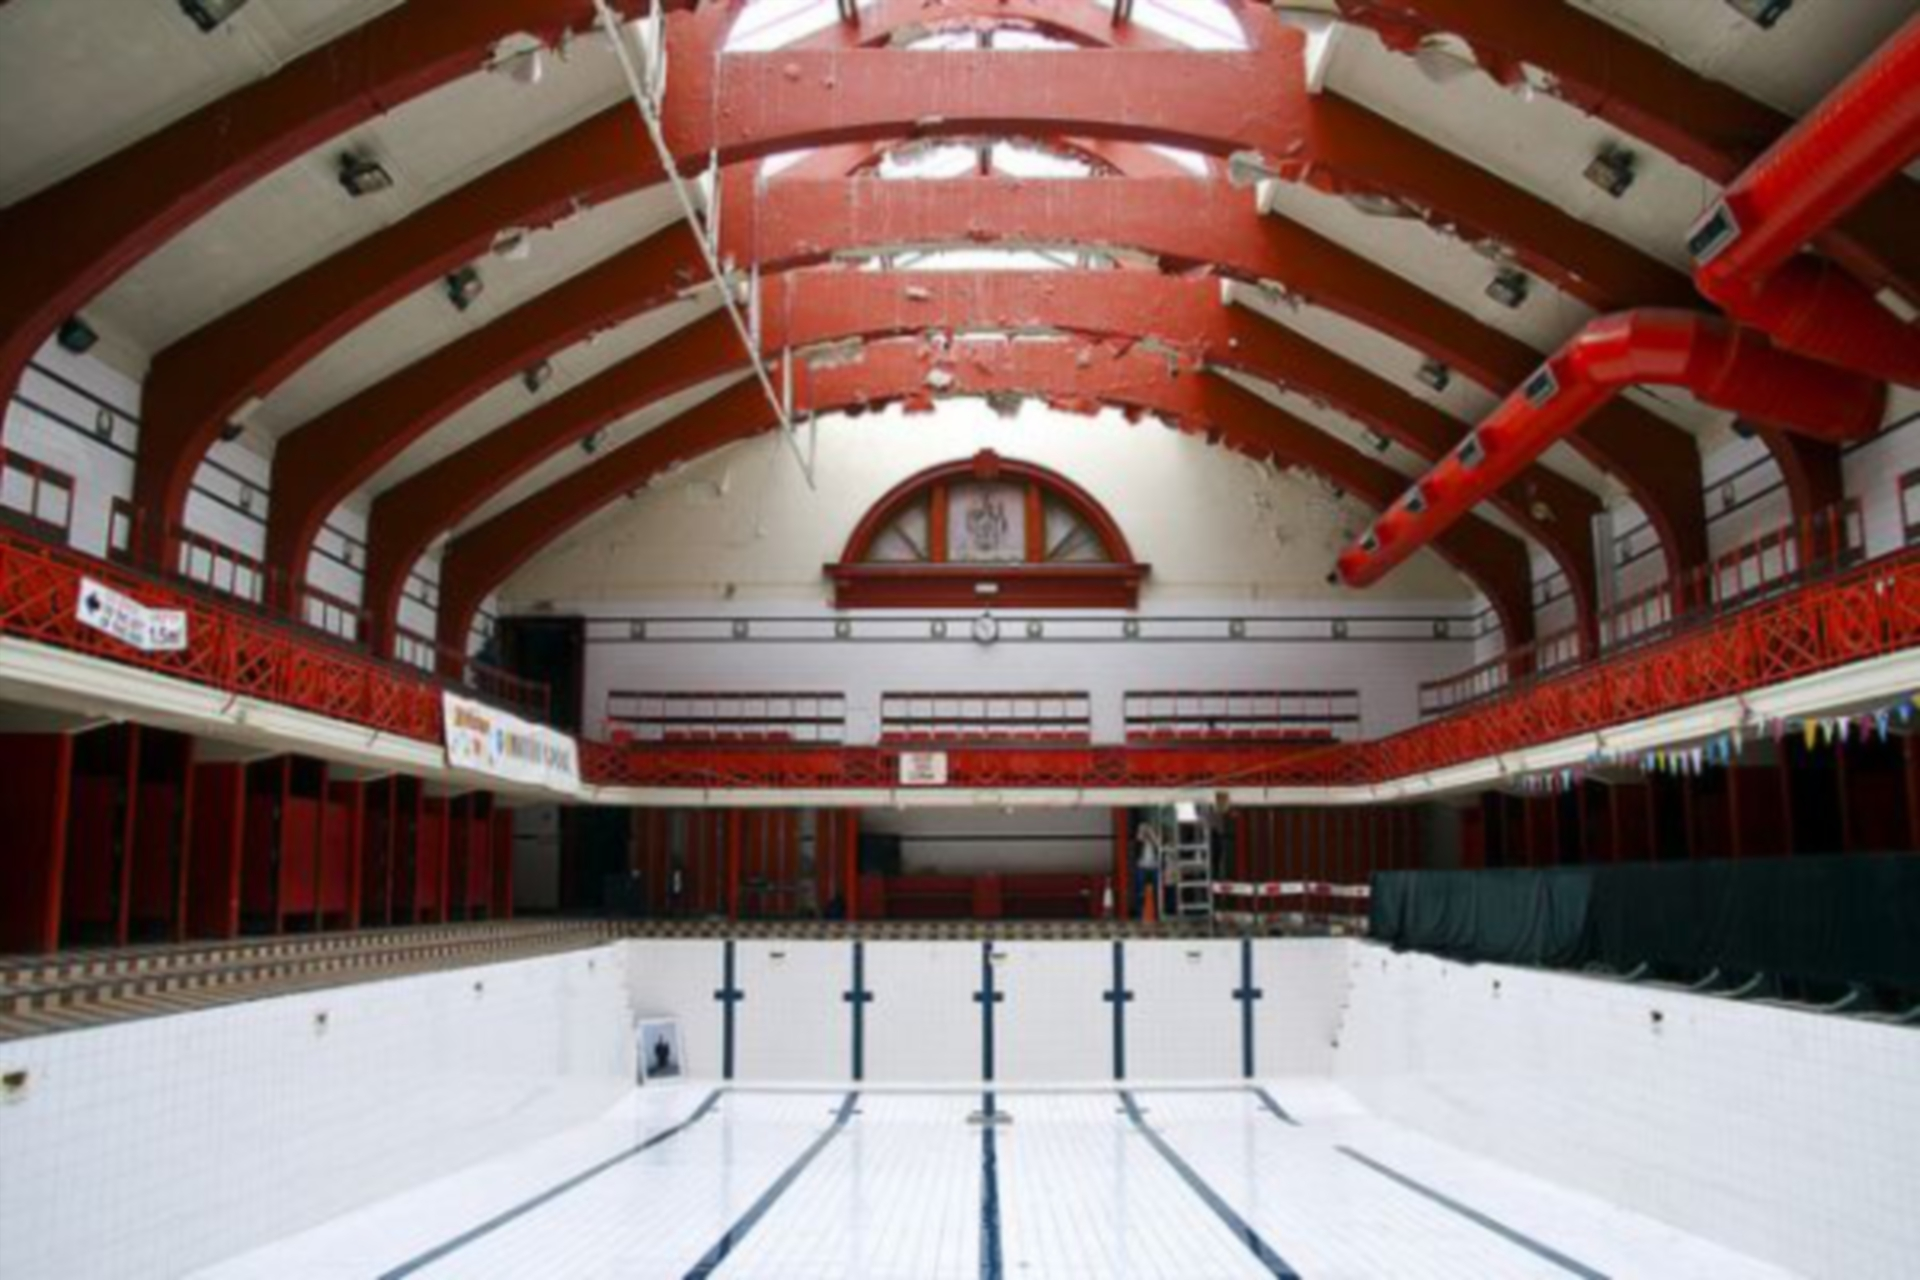 Govanhill Baths Community Trust have been granted over £200,000 by the Scottish Government to help fund community creativity.